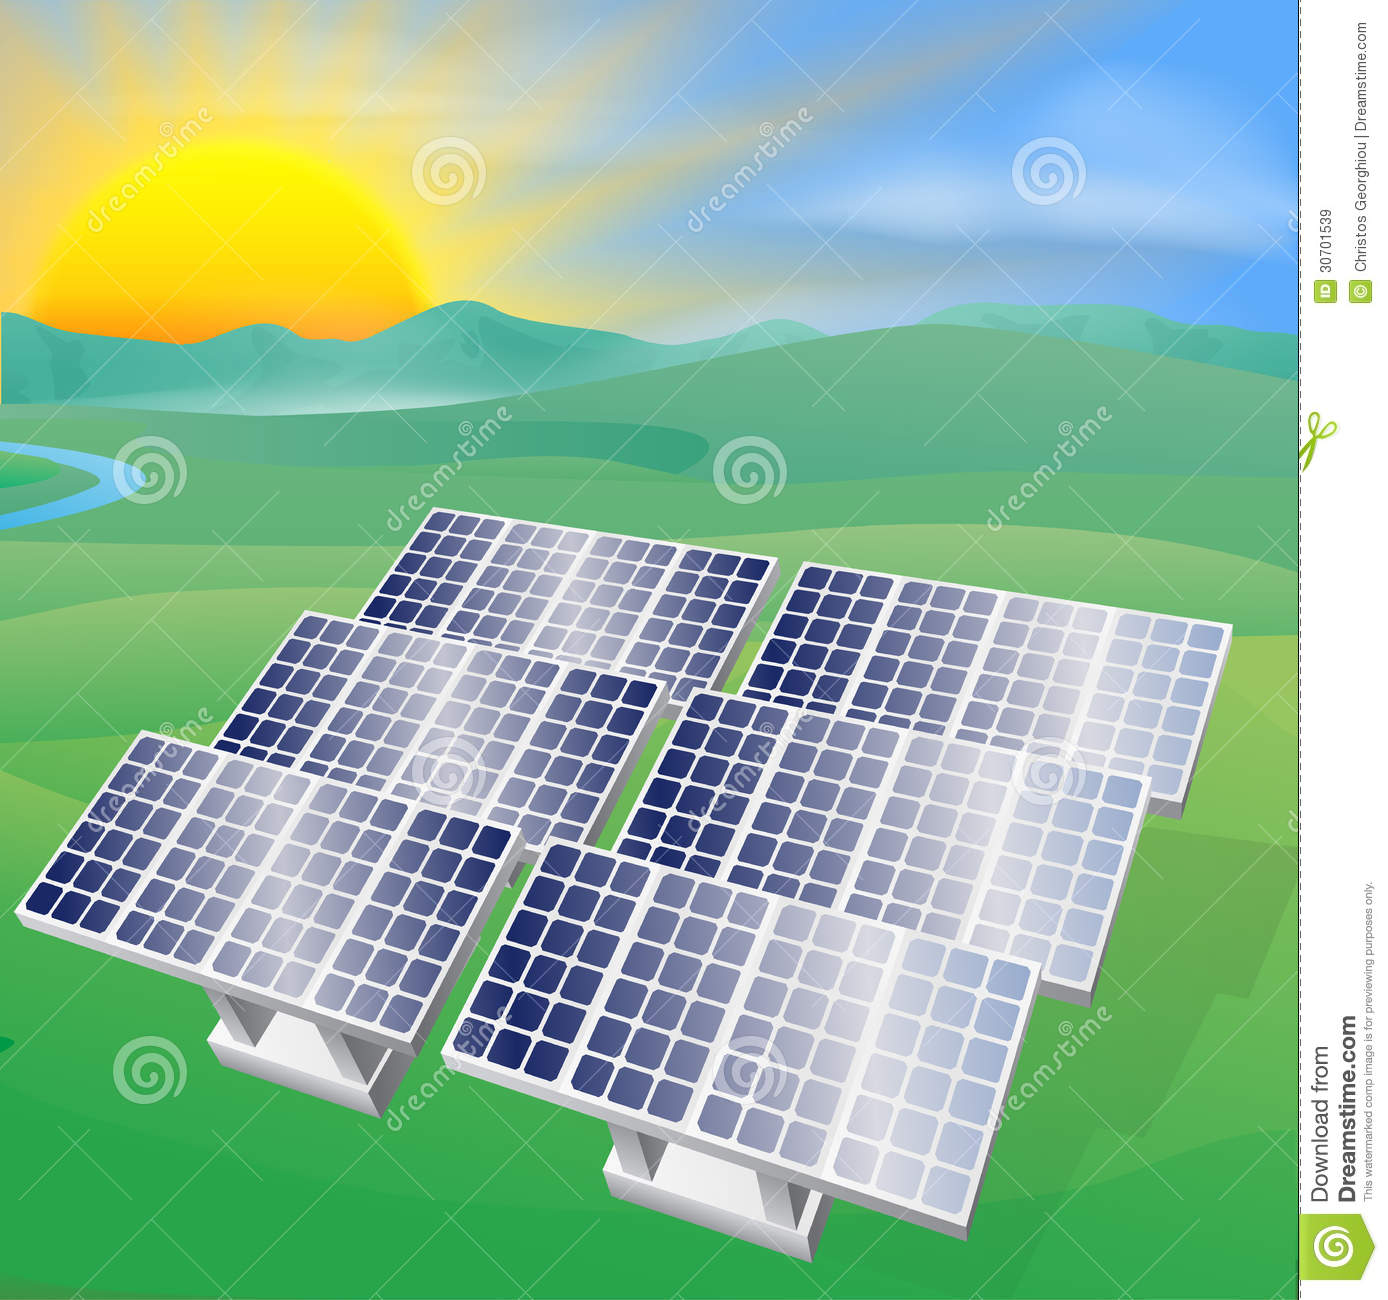 ... of a solar panel photovoltaic cells generating power and electricity